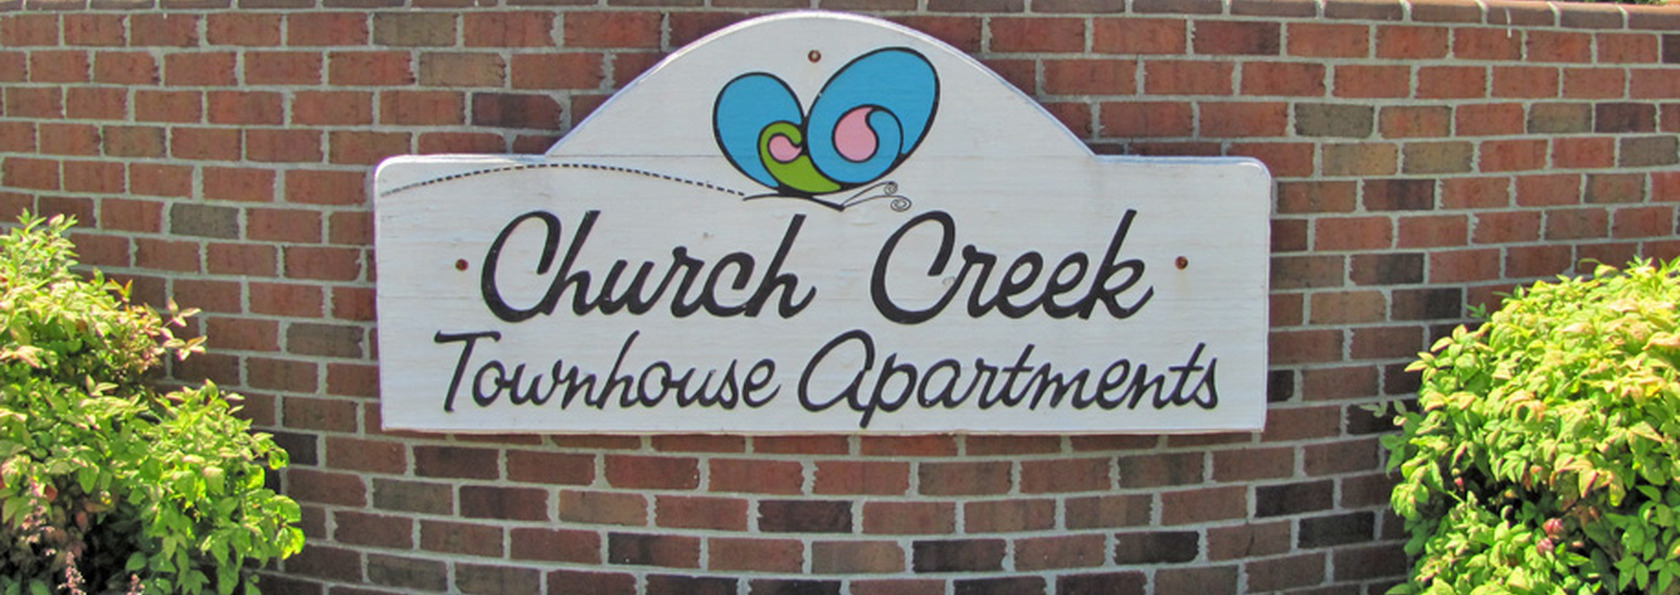 Exceptionnel Hampton Affordable Living | Church Creek Apartments, Hampton VA